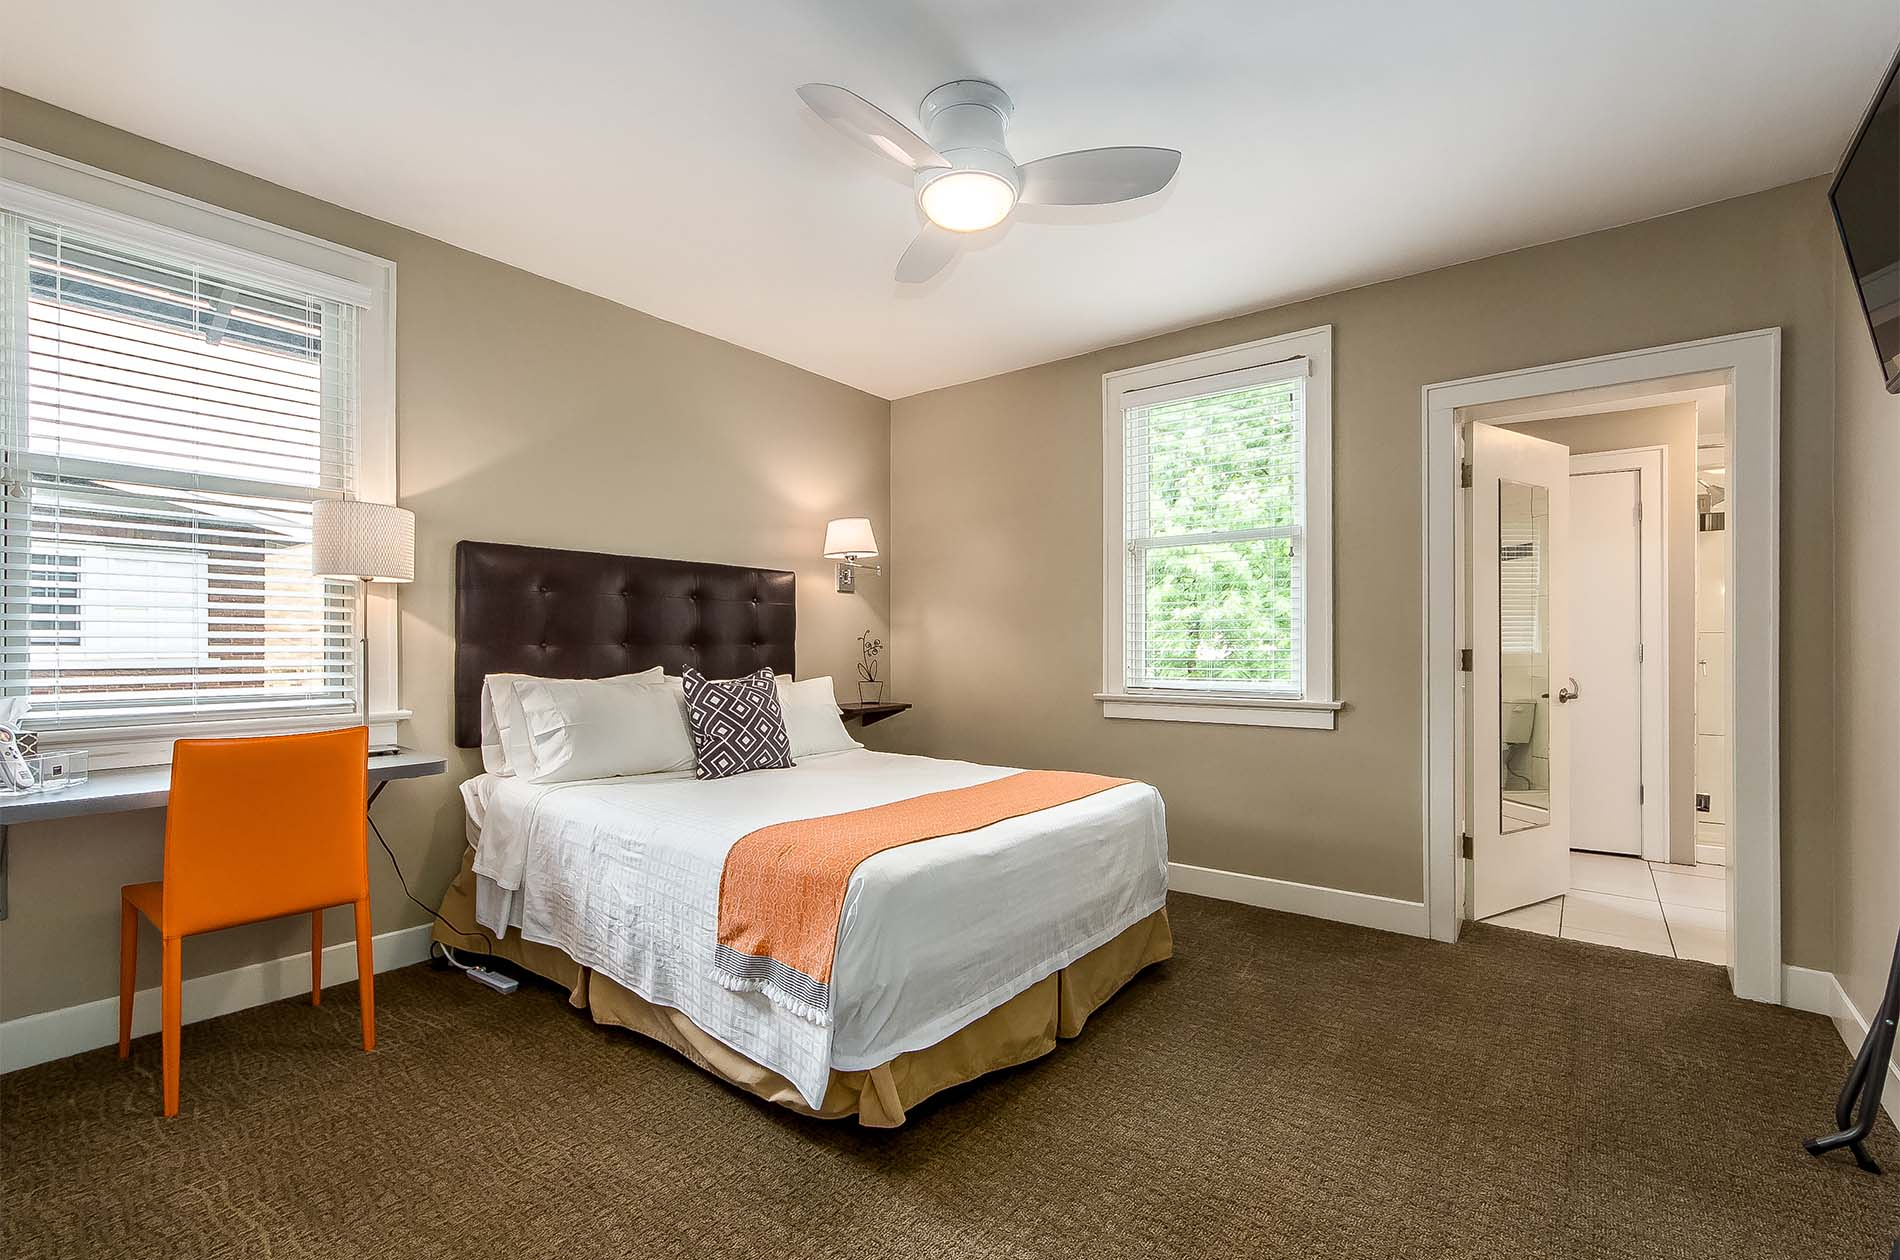 Looking into Room Five with view of desk, and bed made with white linens and orange accents